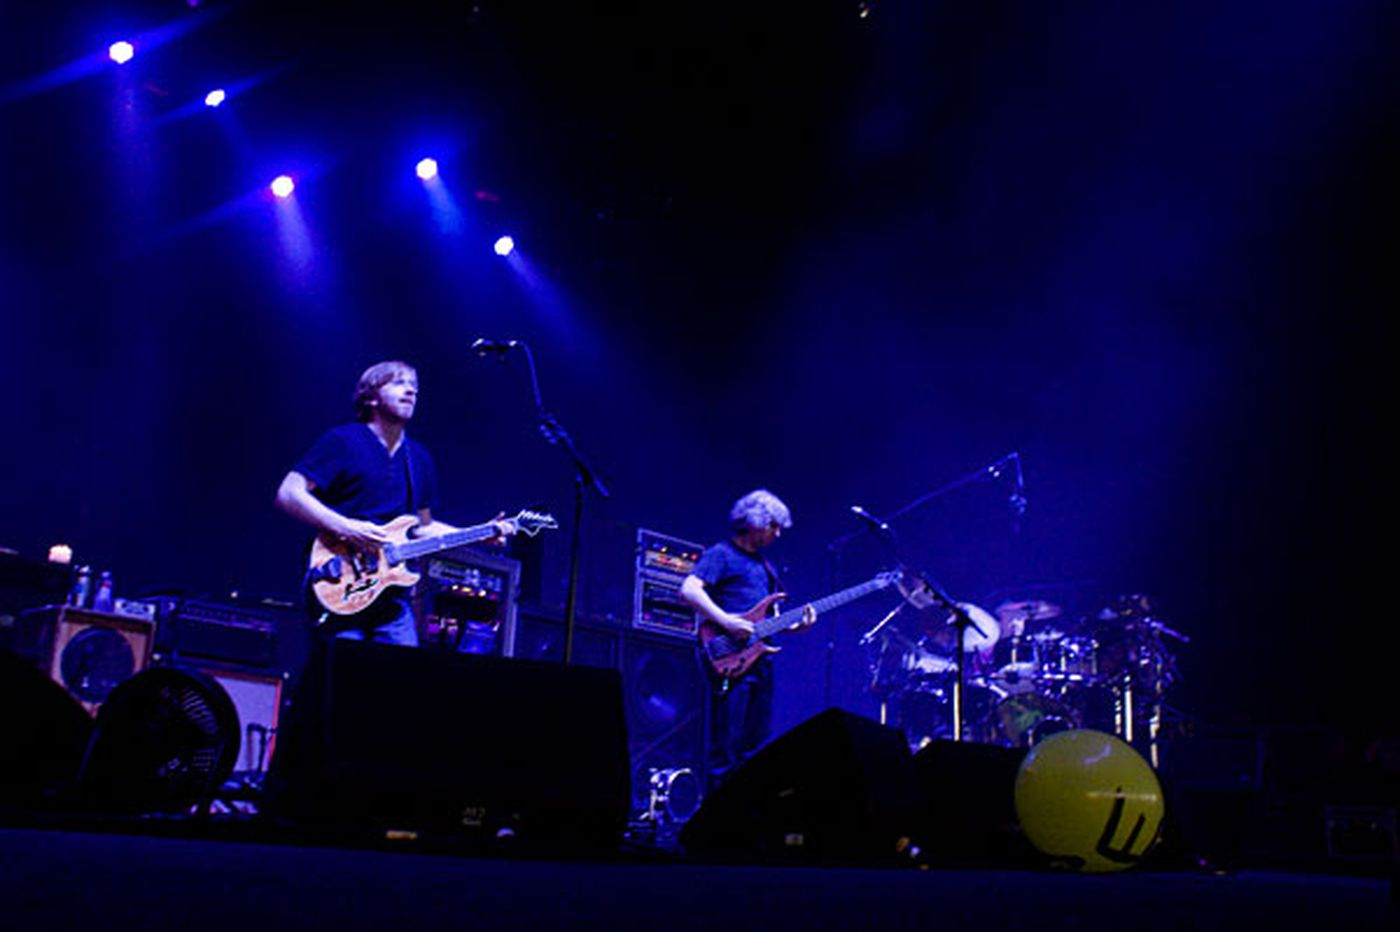 Phish set to play their smallest venue in two decades at the Met